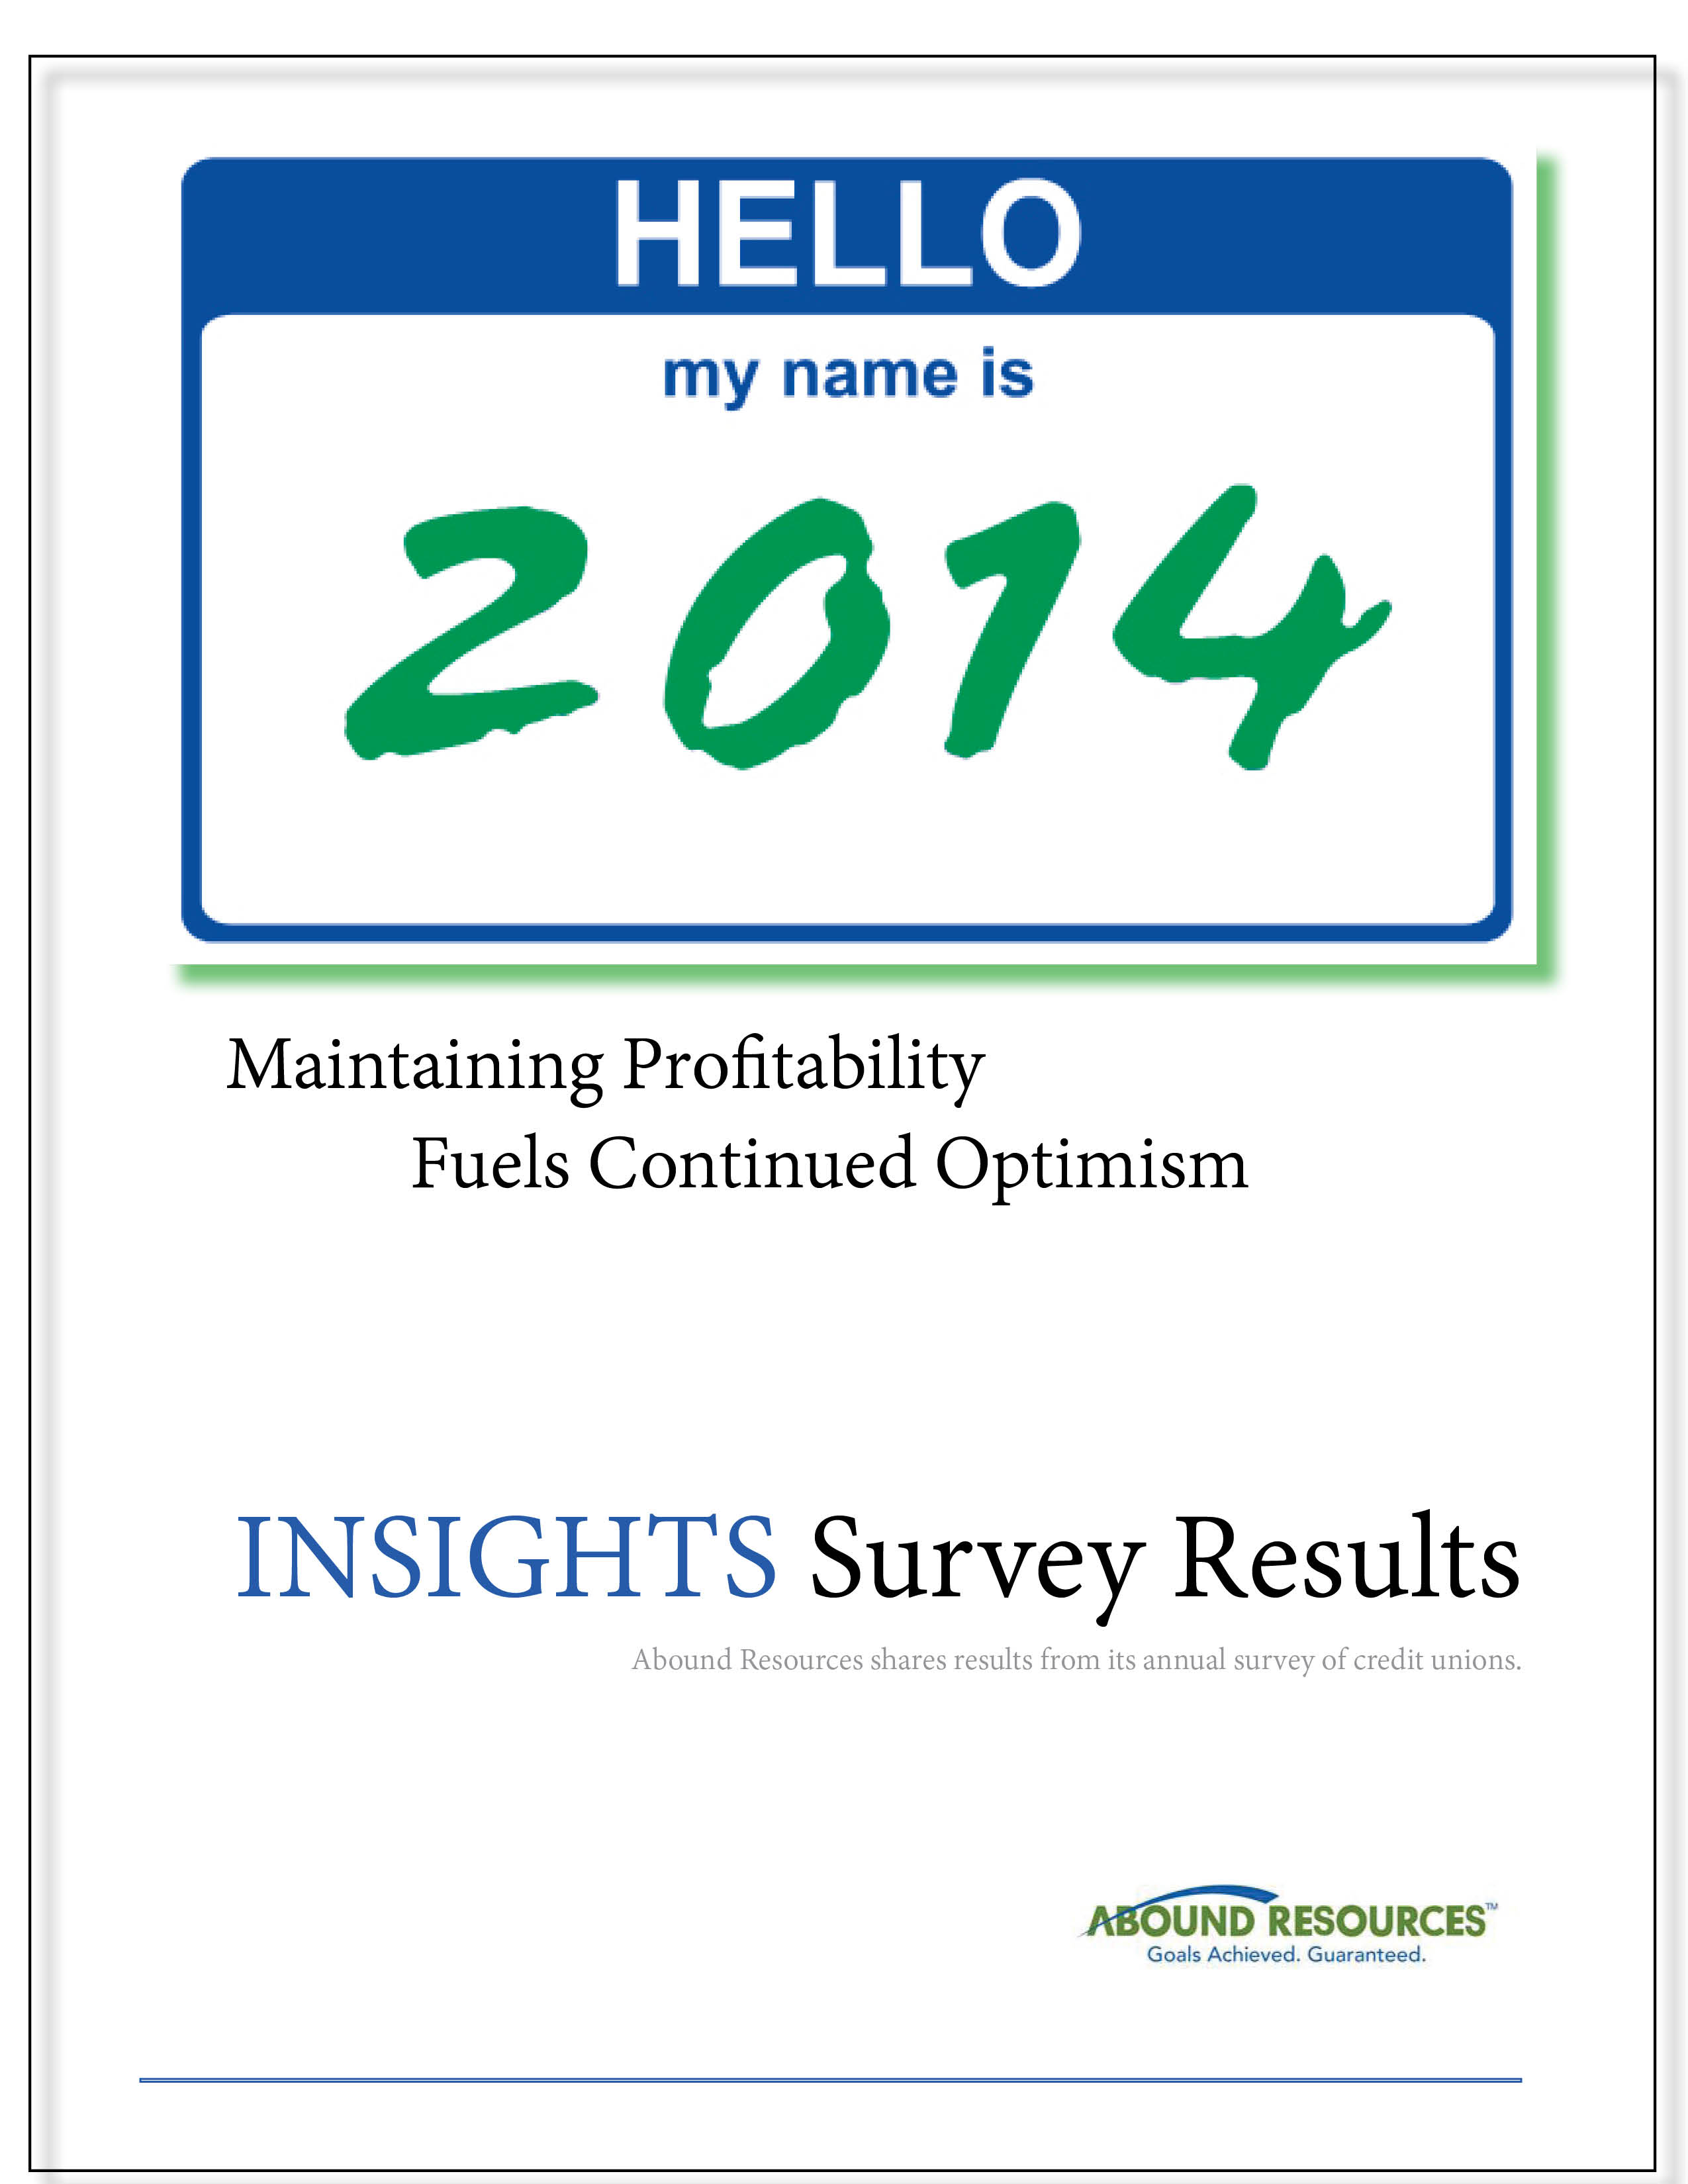 Annual Credit Union Survey Results